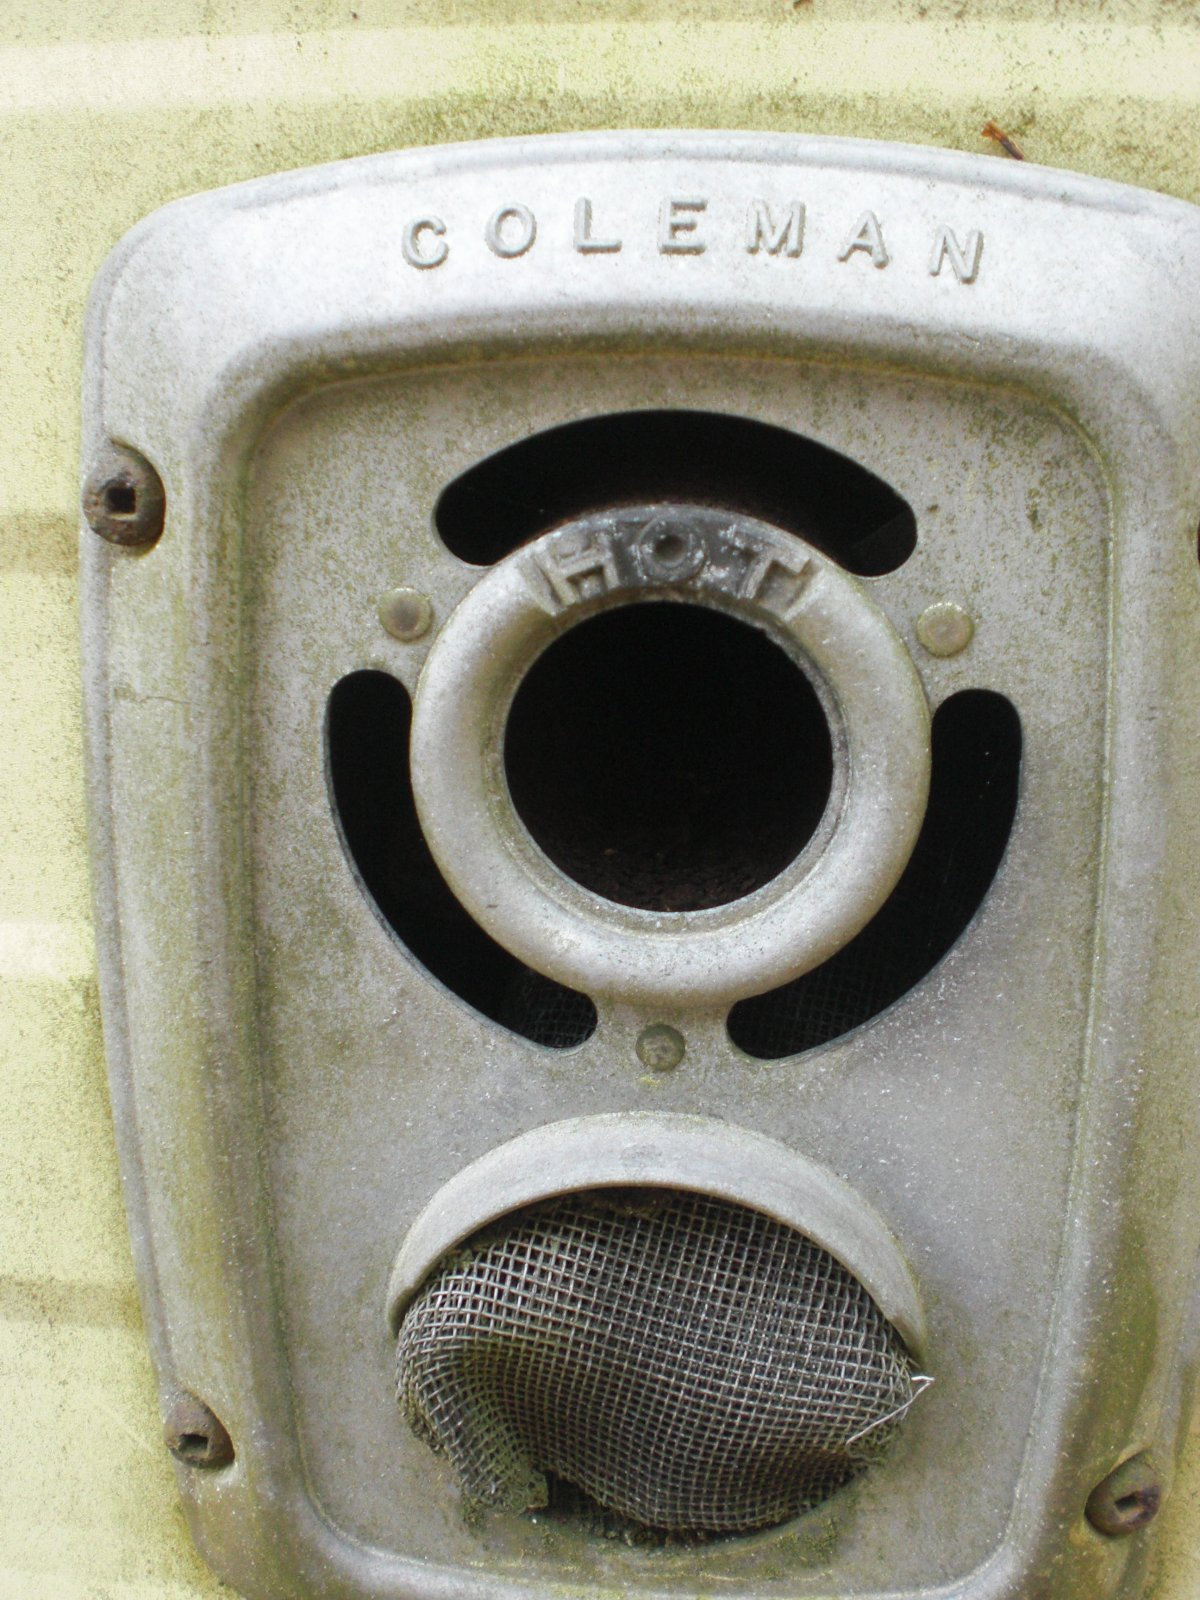 Click image for larger version  Name:stove vent coleman.jpg Views:189 Size:357.3 KB ID:9811